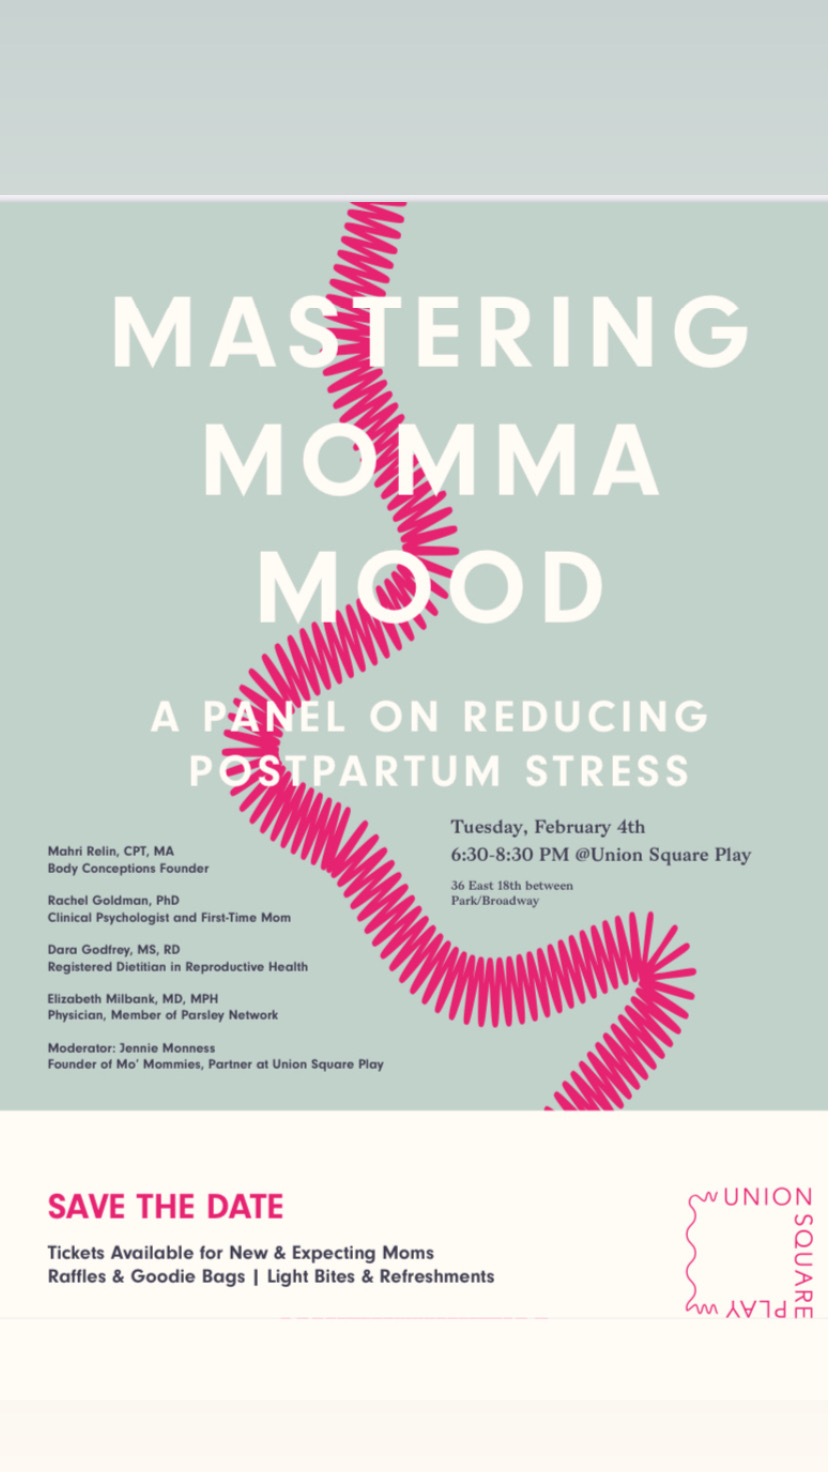 mastering momma mood event flyer